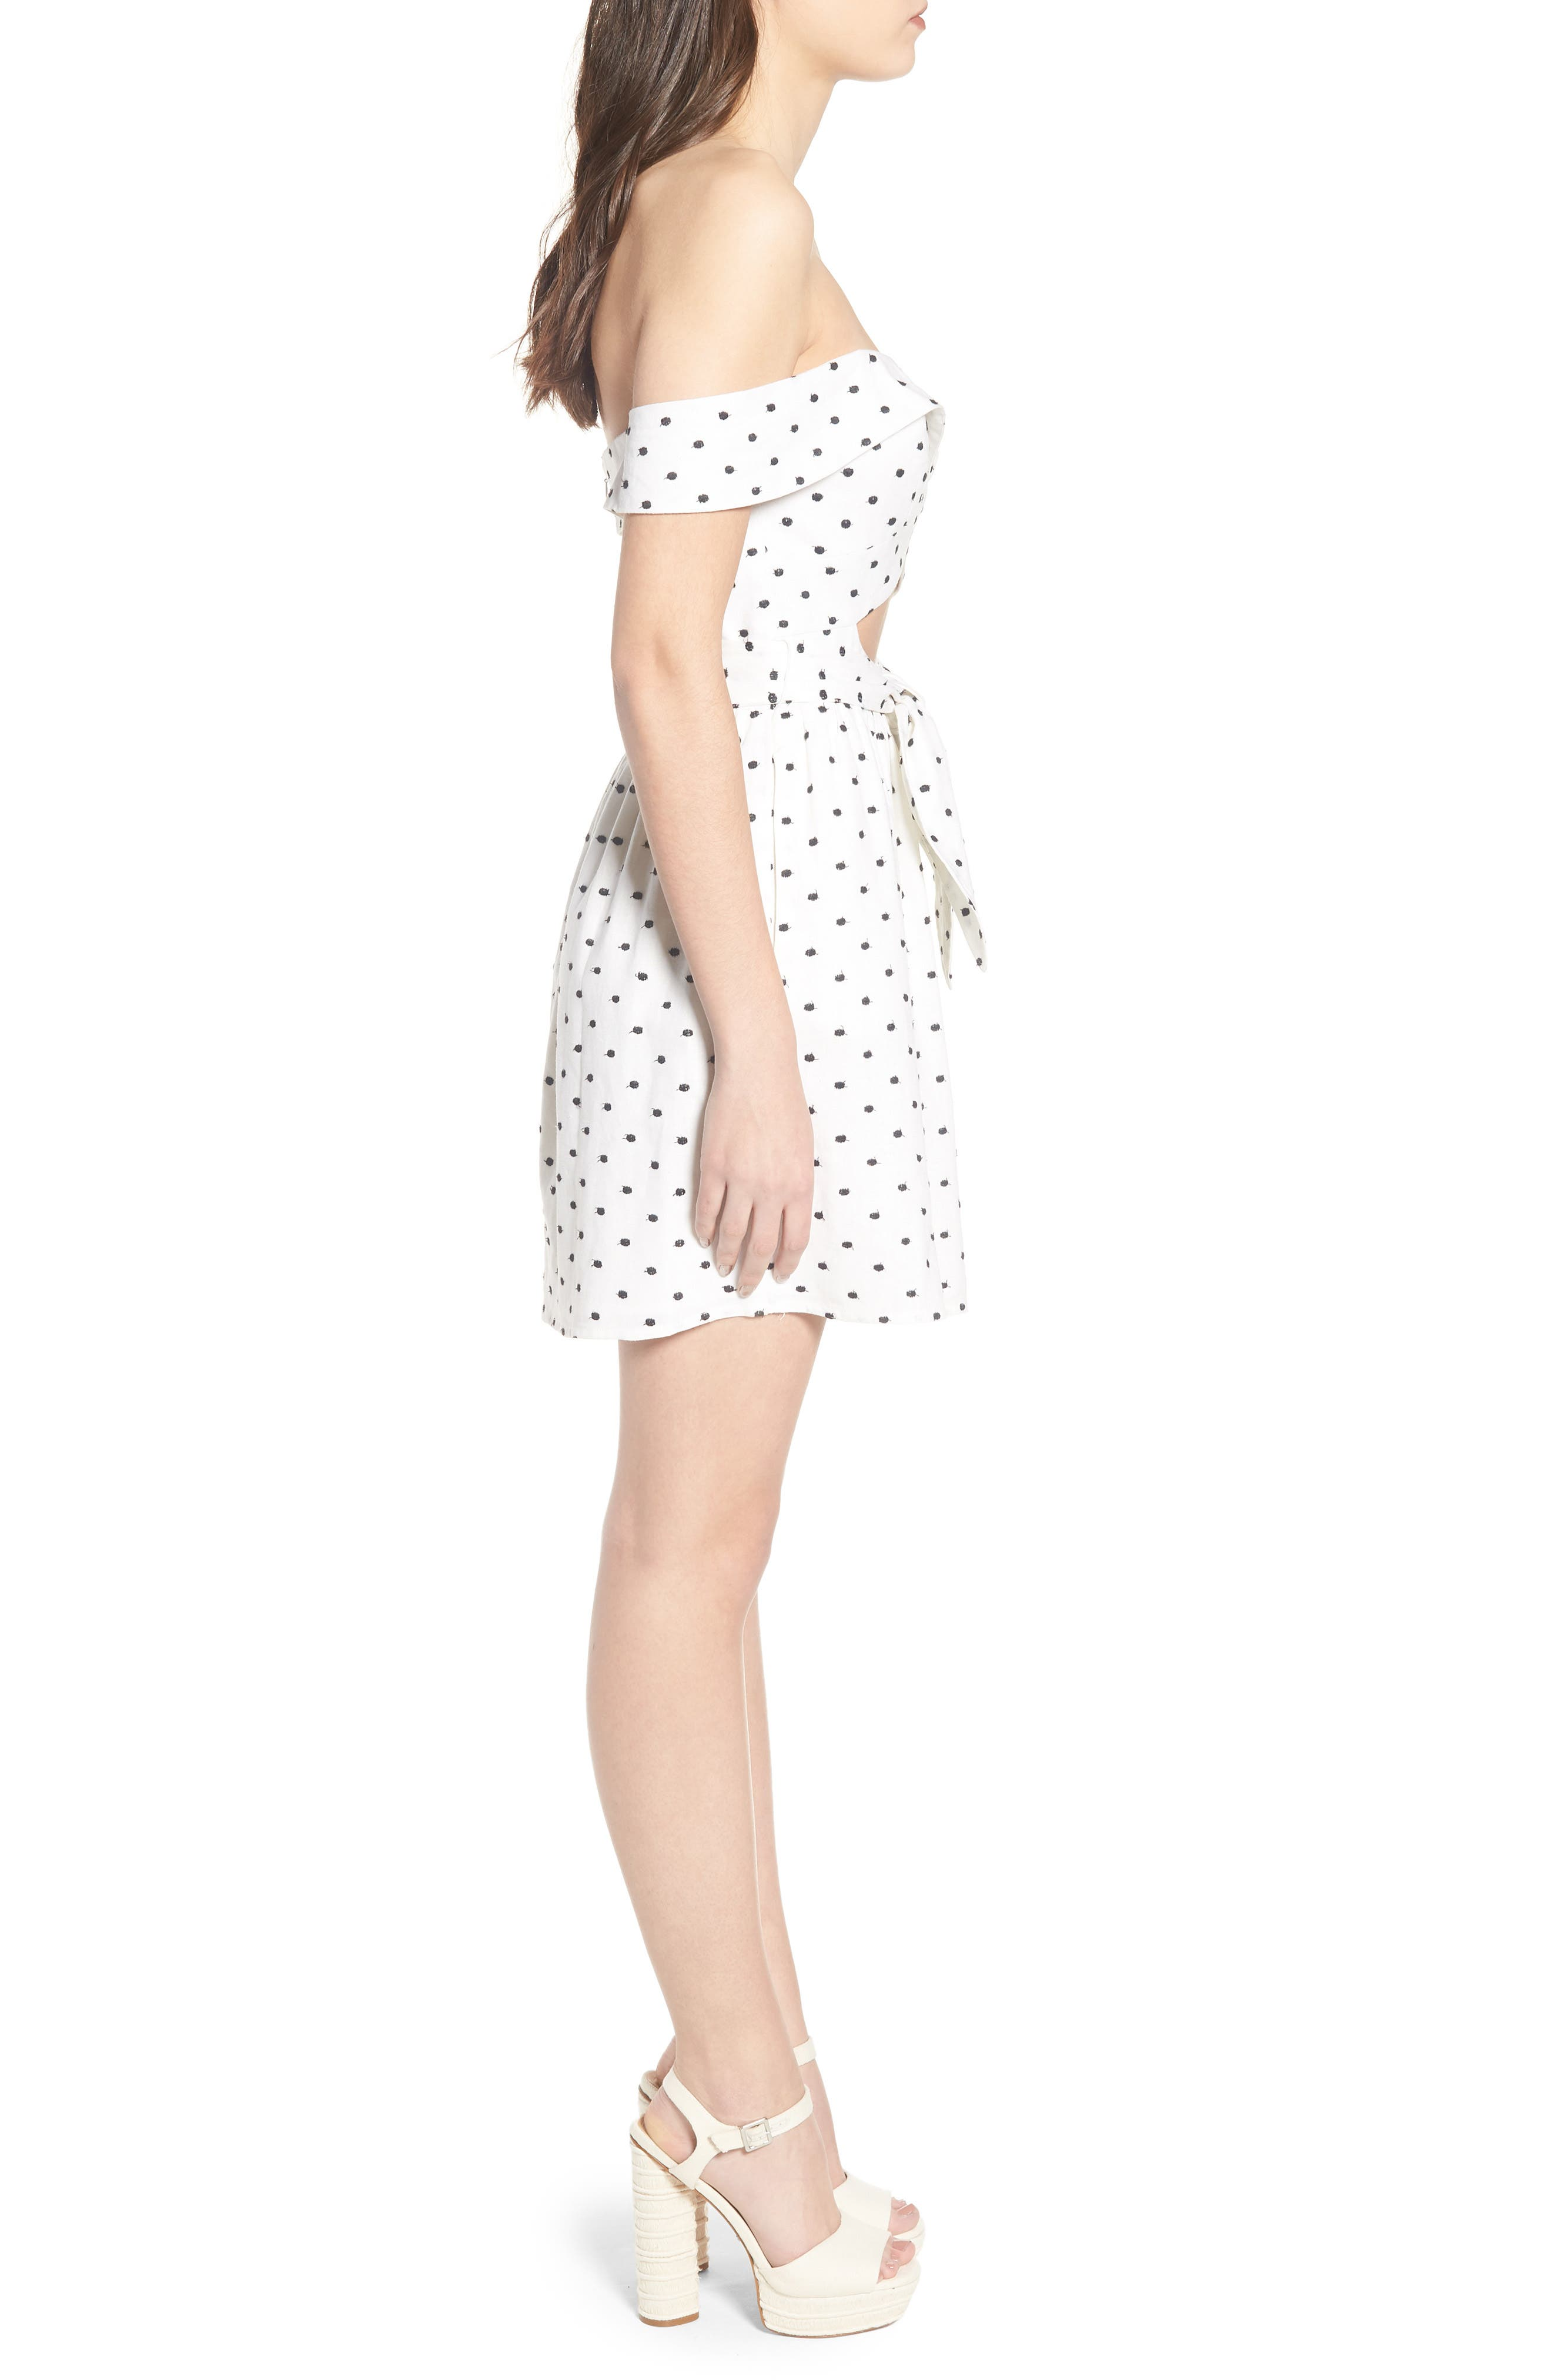 Capri Knot Cutout Minidress,                             Alternate thumbnail 4, color,                             Ivory Polka Dot